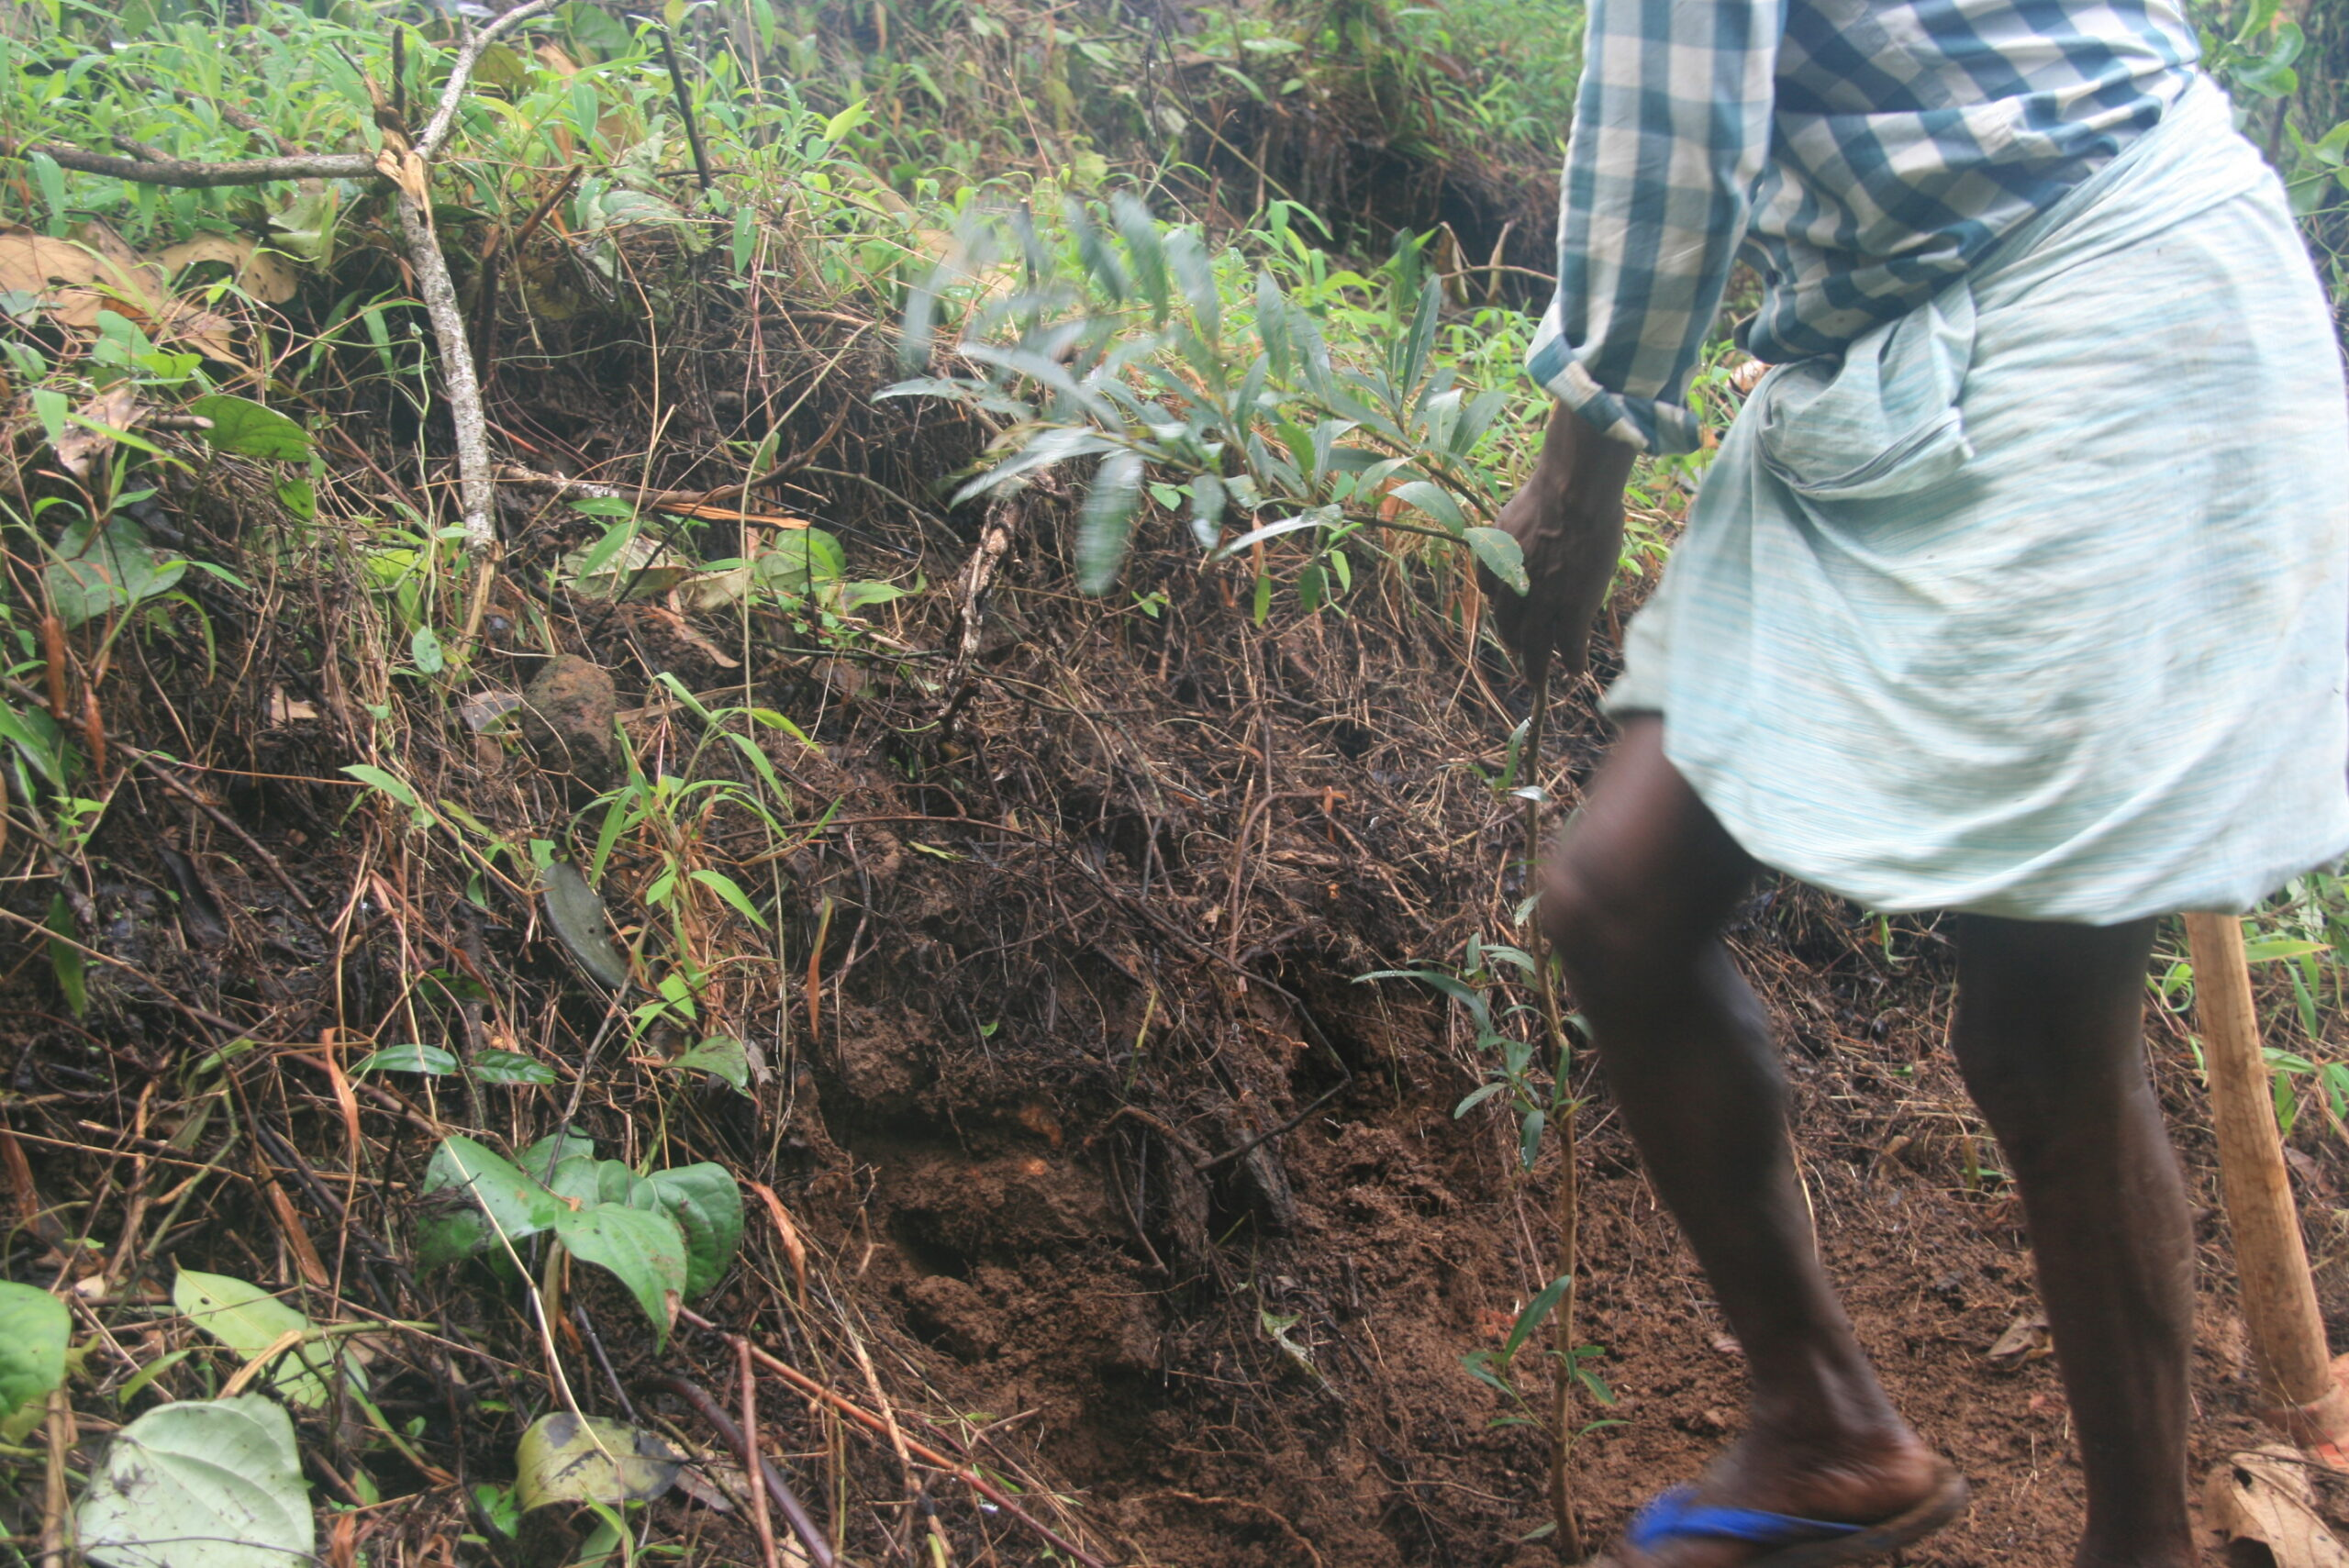 22nd Aug 2015 Planting 2